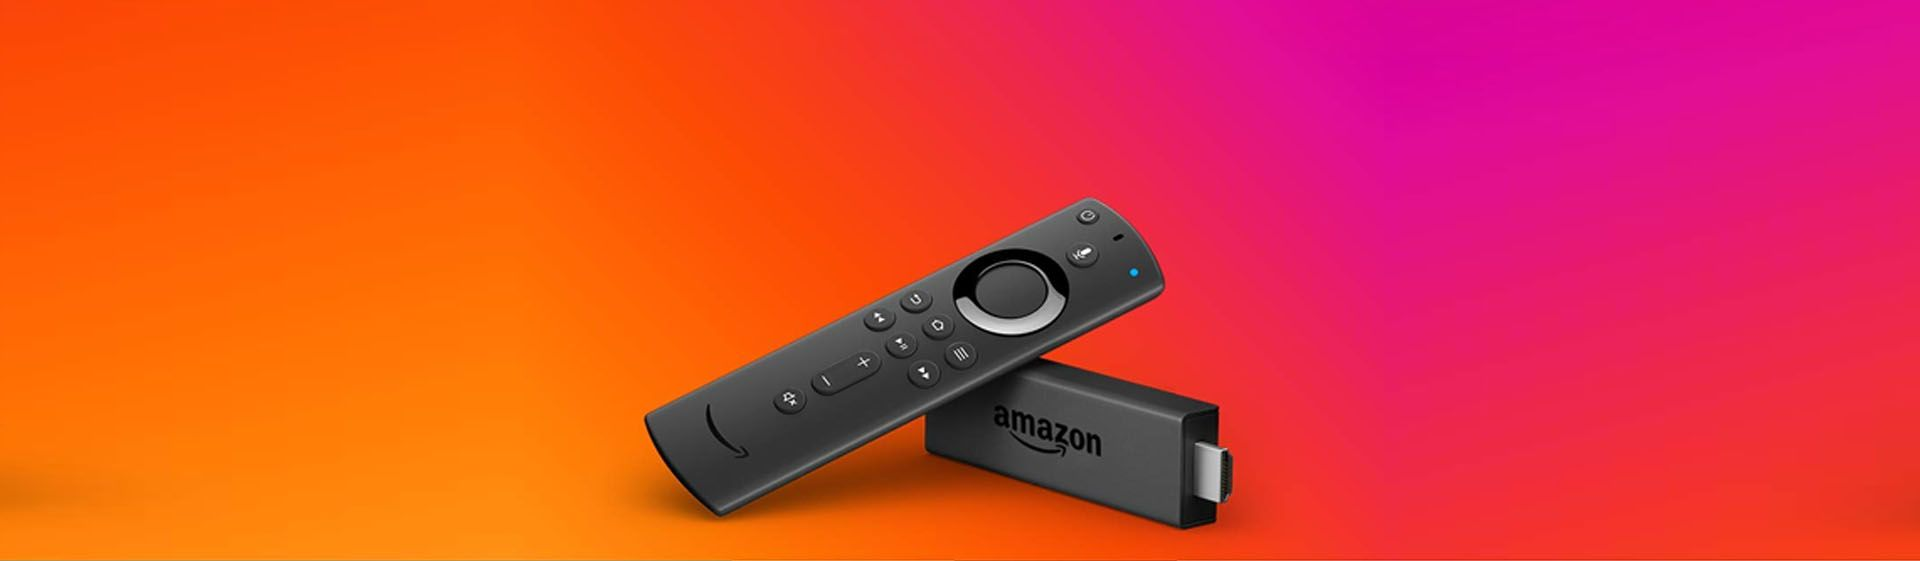 Amazon Fire TV Stick é boa? Entenda como funciona a smart TV box